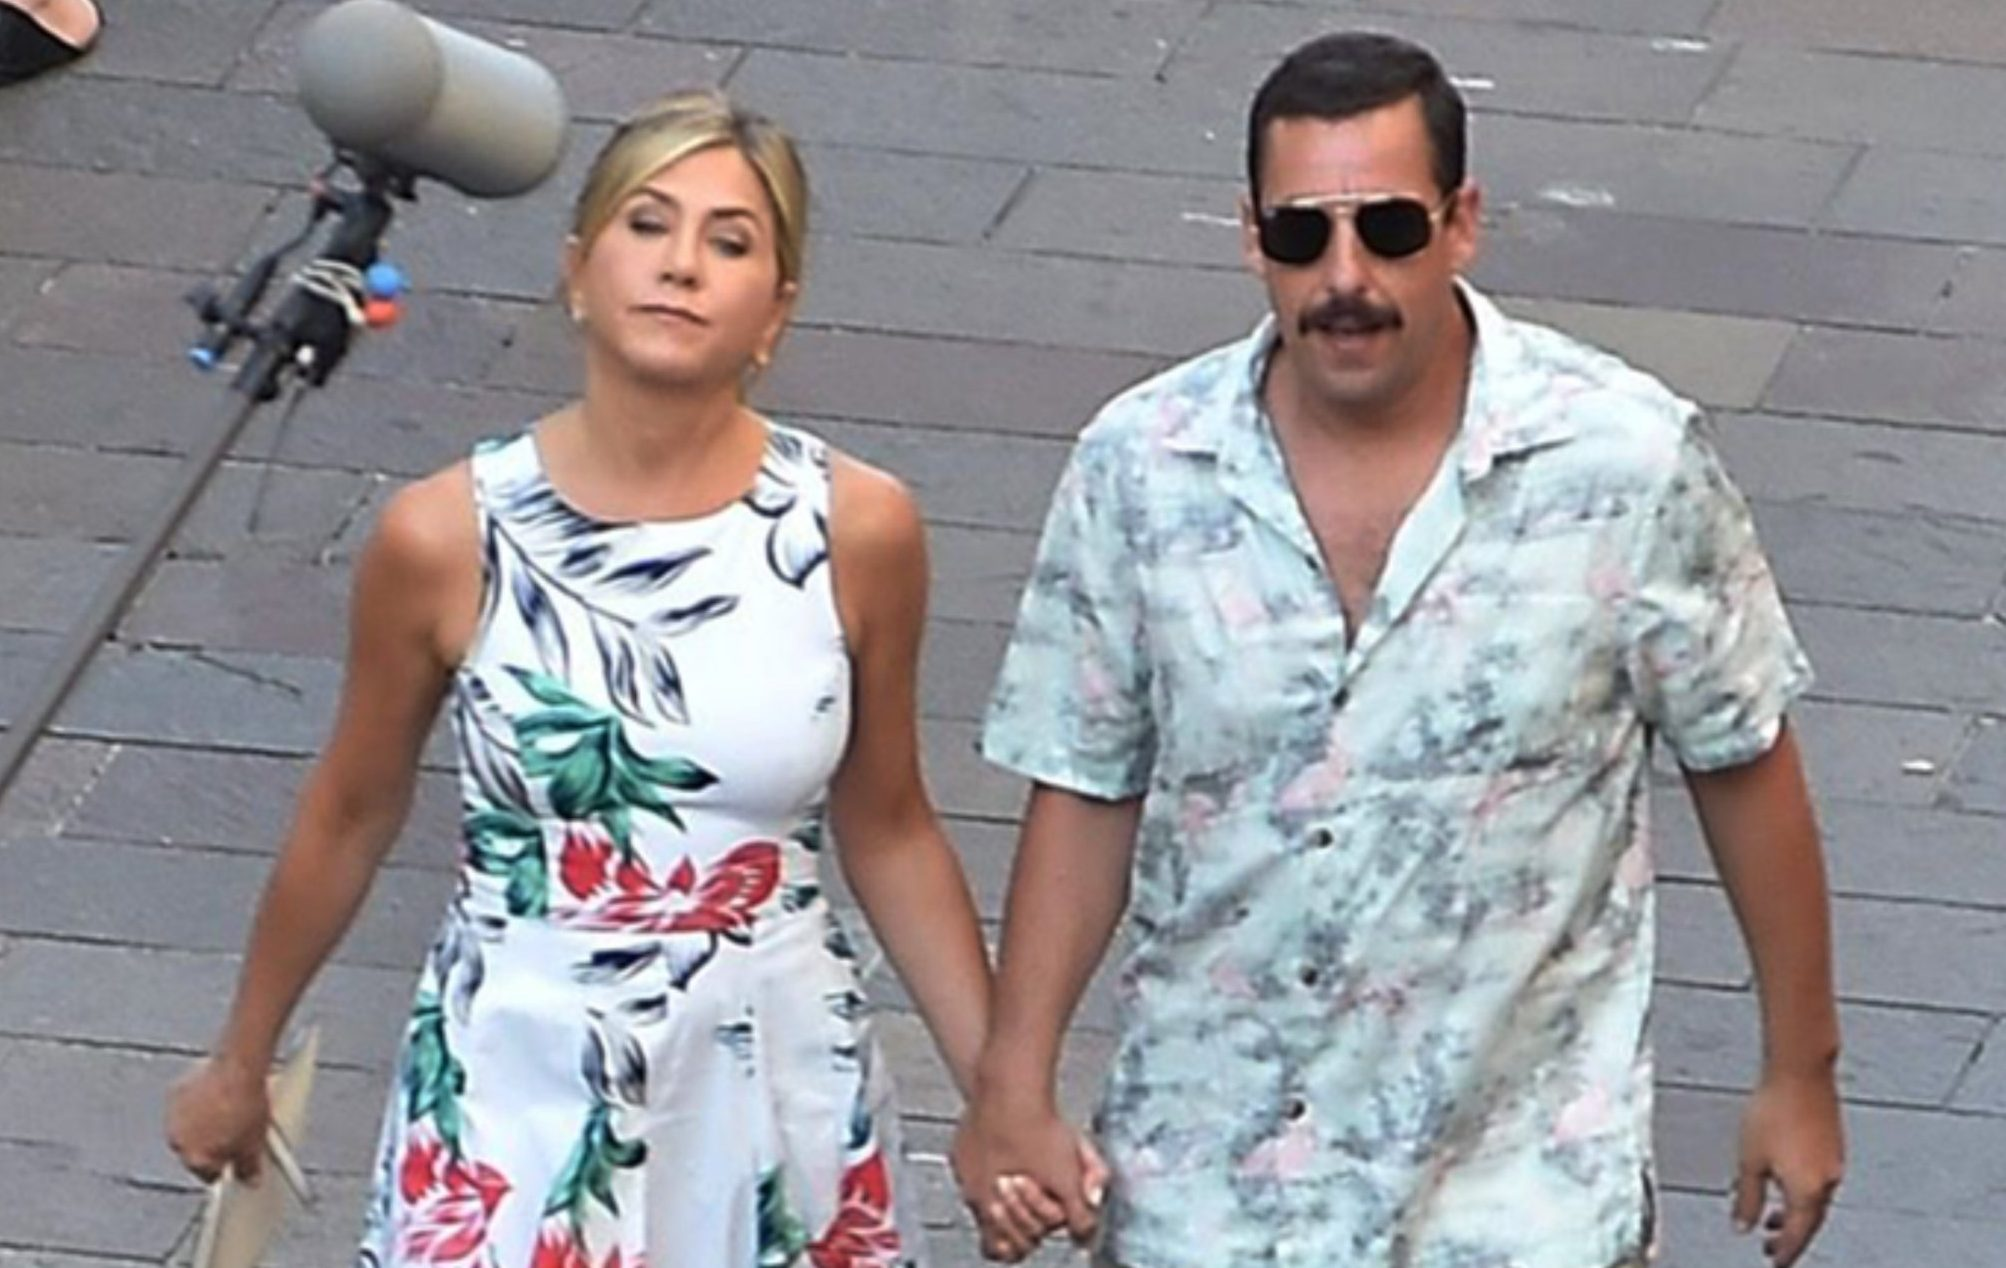 Jennifer Aniston and Adam Sandler are seen holding hands while filming a scene for their latest film, 'Murder Mystery' in Milan, Italy. Pictured: Jennifer Aniston,Adam Sandler Ref: SPL5018989 290818 NON-EXCLUSIVE Picture by: SplashNews.com Splash News and Pictures Los Angeles: 310-821-2666 New York: 212-619-2666 London: 0207 644 7656 Milan: +39 02 4399 8577 Sydney: +61 02 9240 7700 photodesk@splashnews.com World Rights, No France Rights